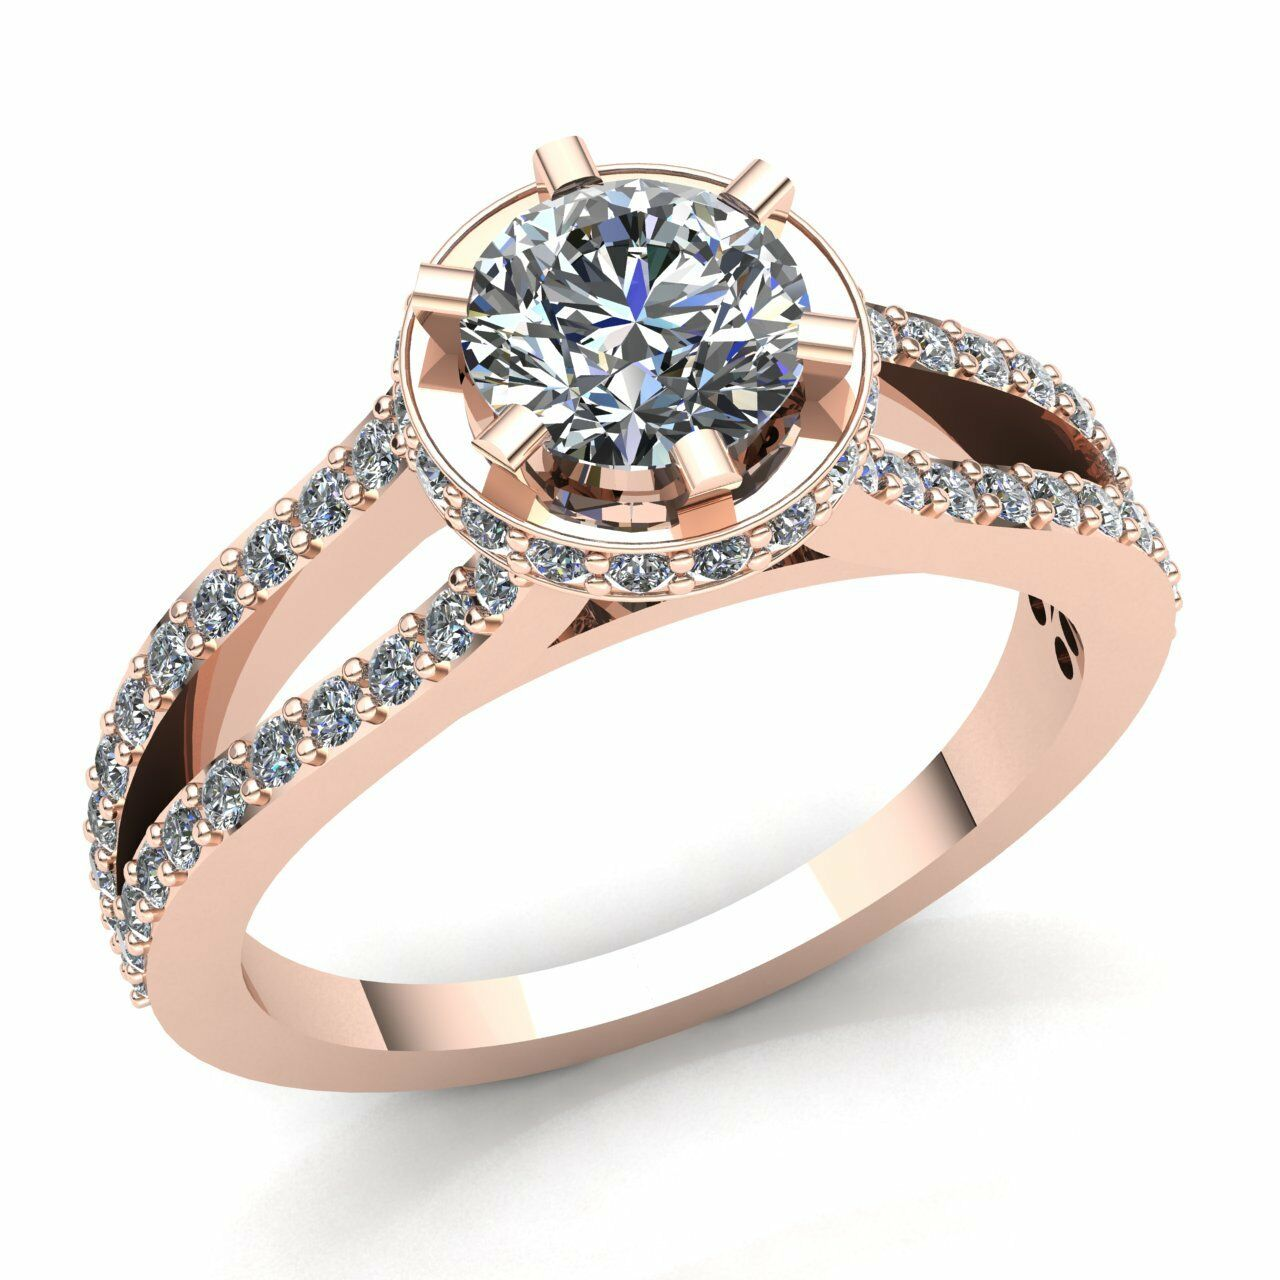 Natural 0.75carat Round Diamond Ladies Solitaire Halo Engagement Ring 10K gold